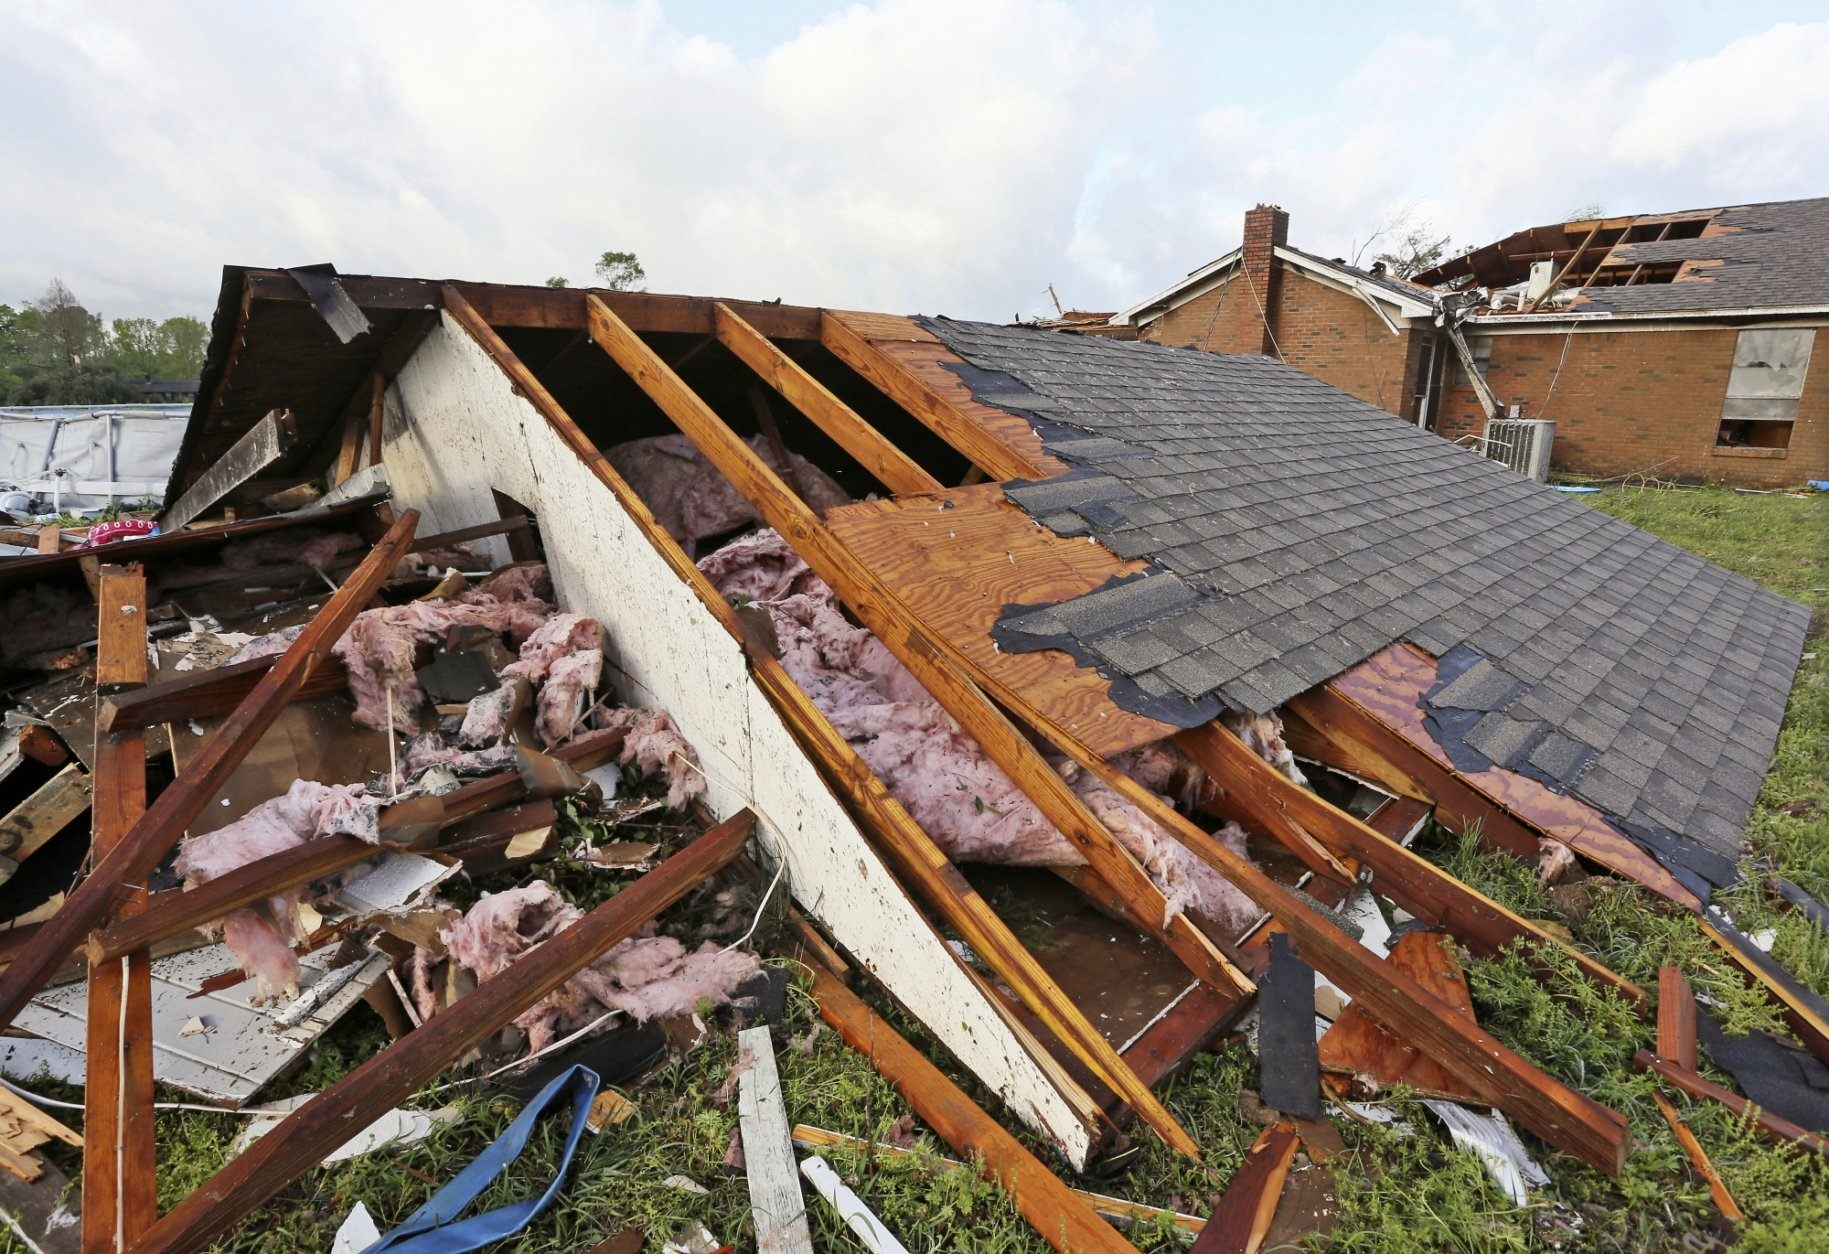 A roof a home that was blown off a home rests on the ground in Hamilton, Miss., after a deadly storm moved through the area Sunday, April 14, 2019. (AP Photo/Jim Lytle)